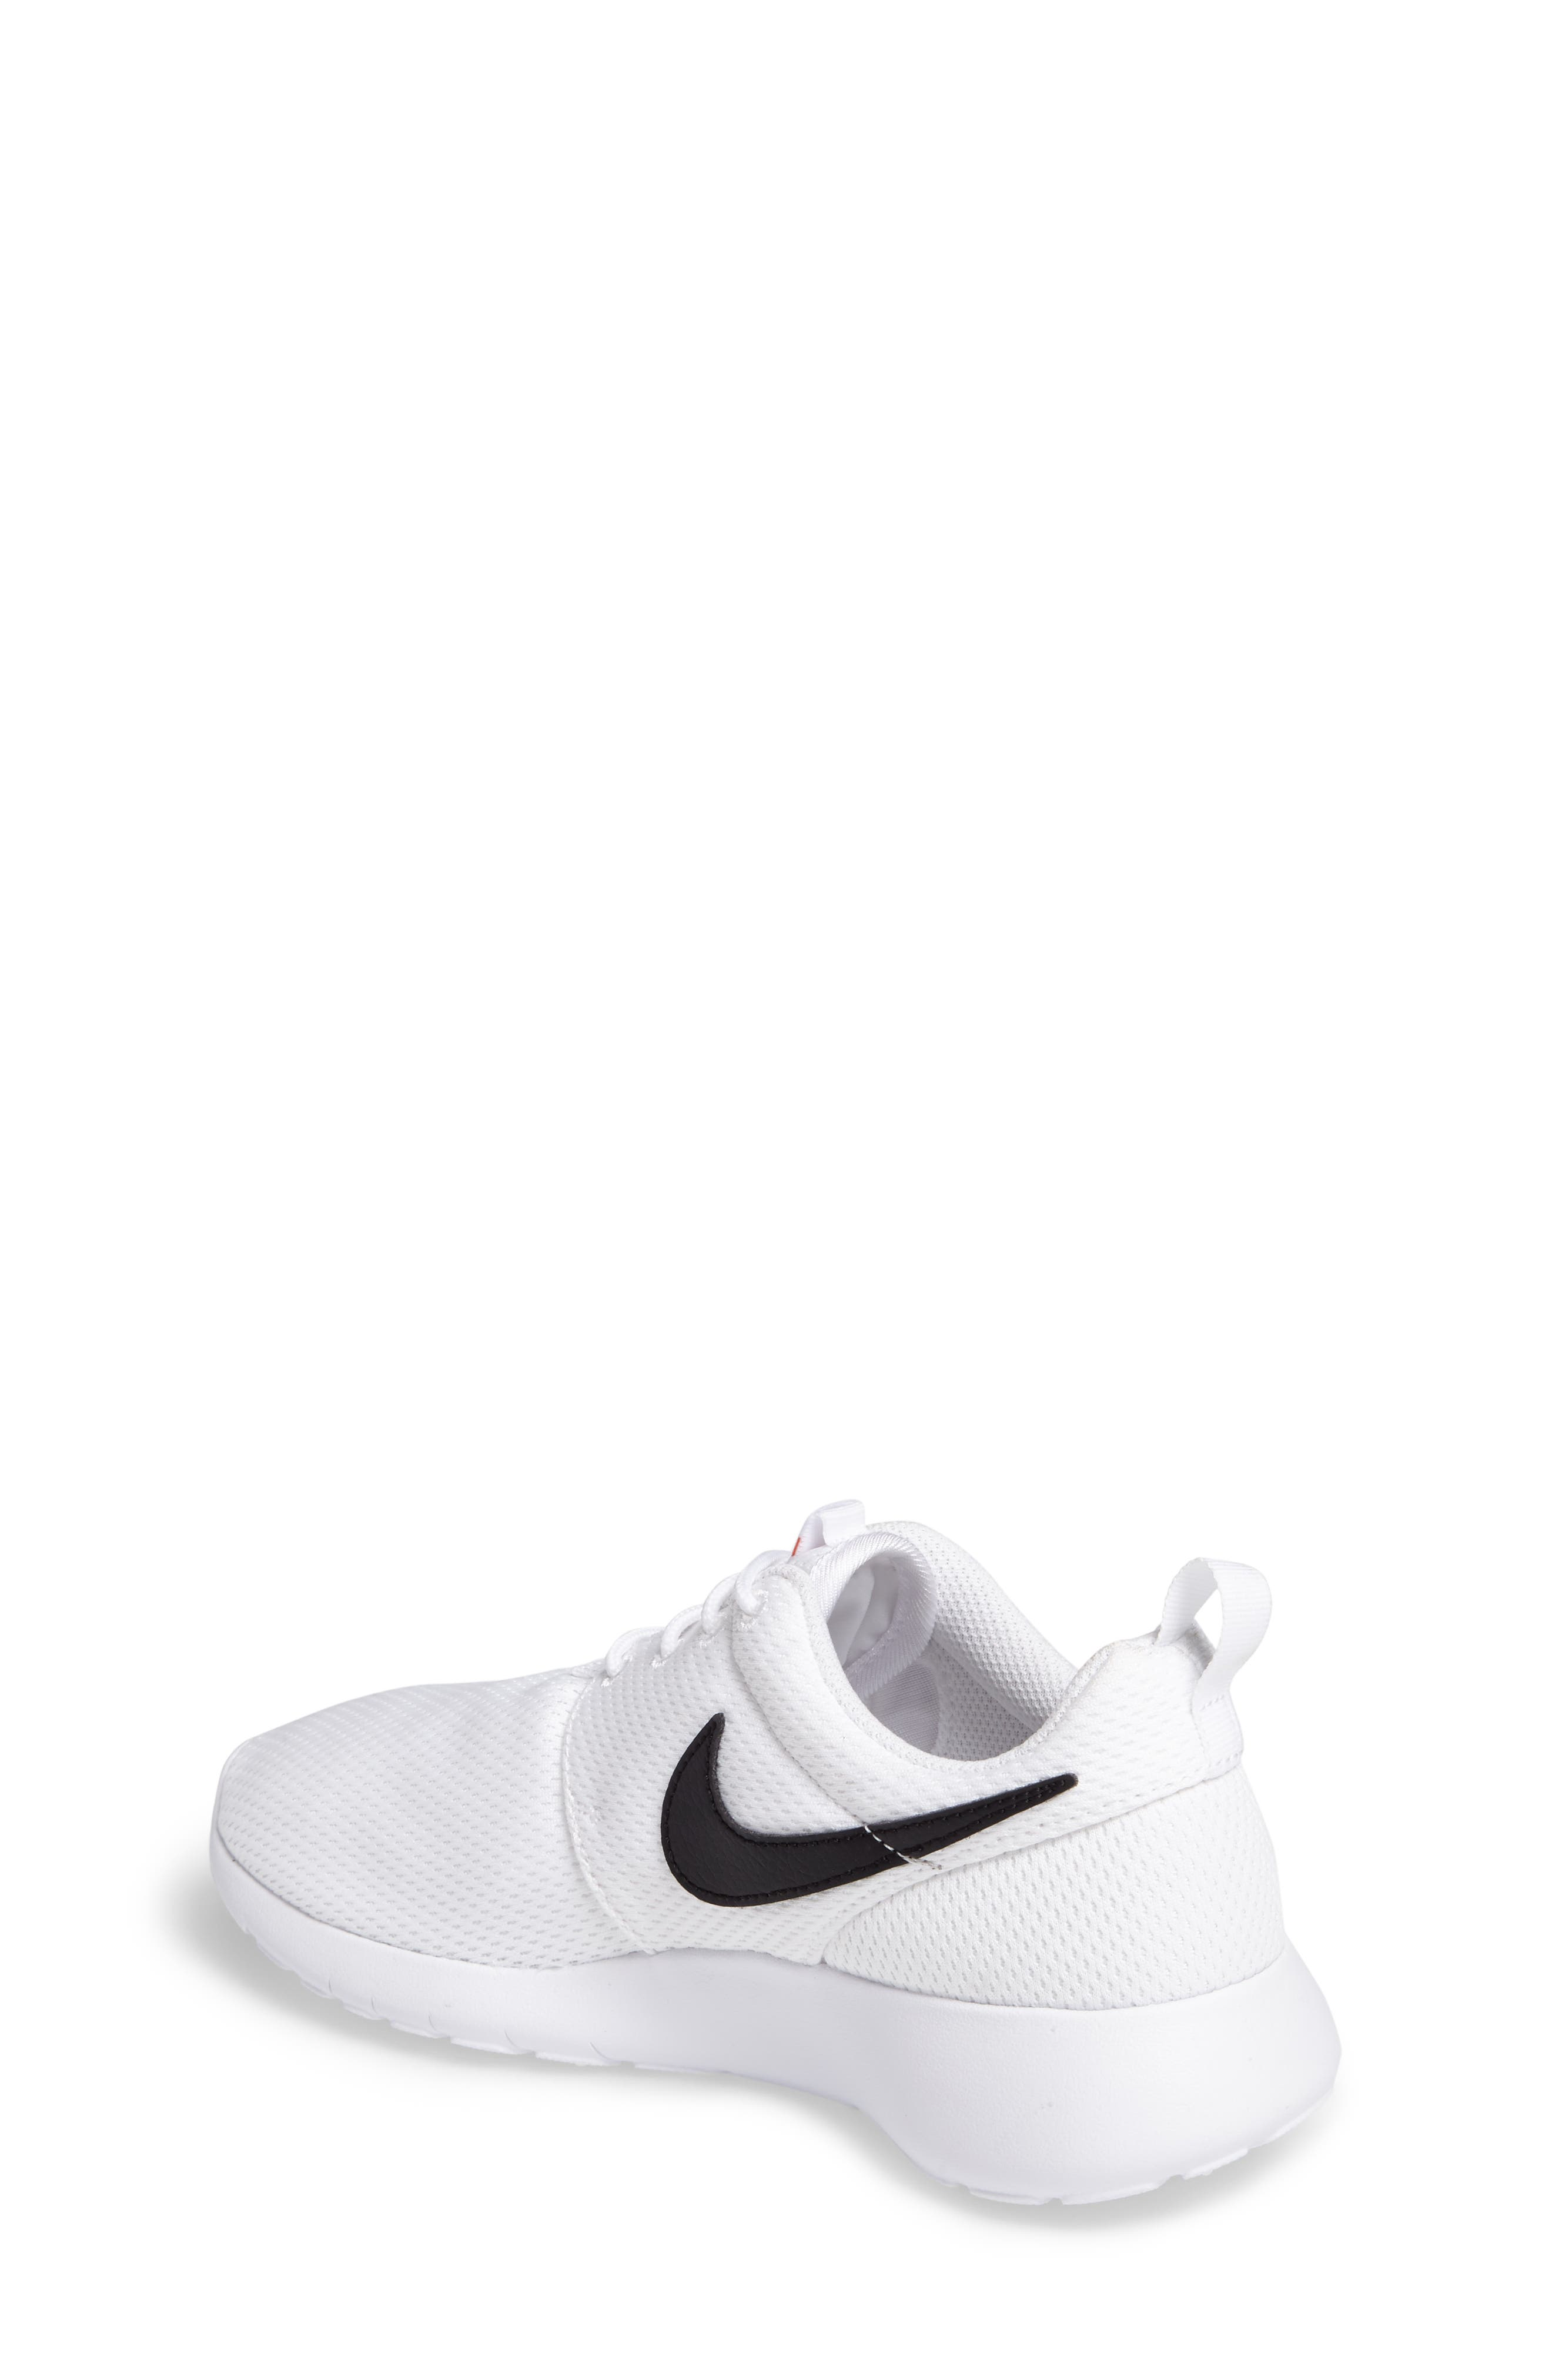 'Roshe Run' Sneaker,                             Alternate thumbnail 82, color,